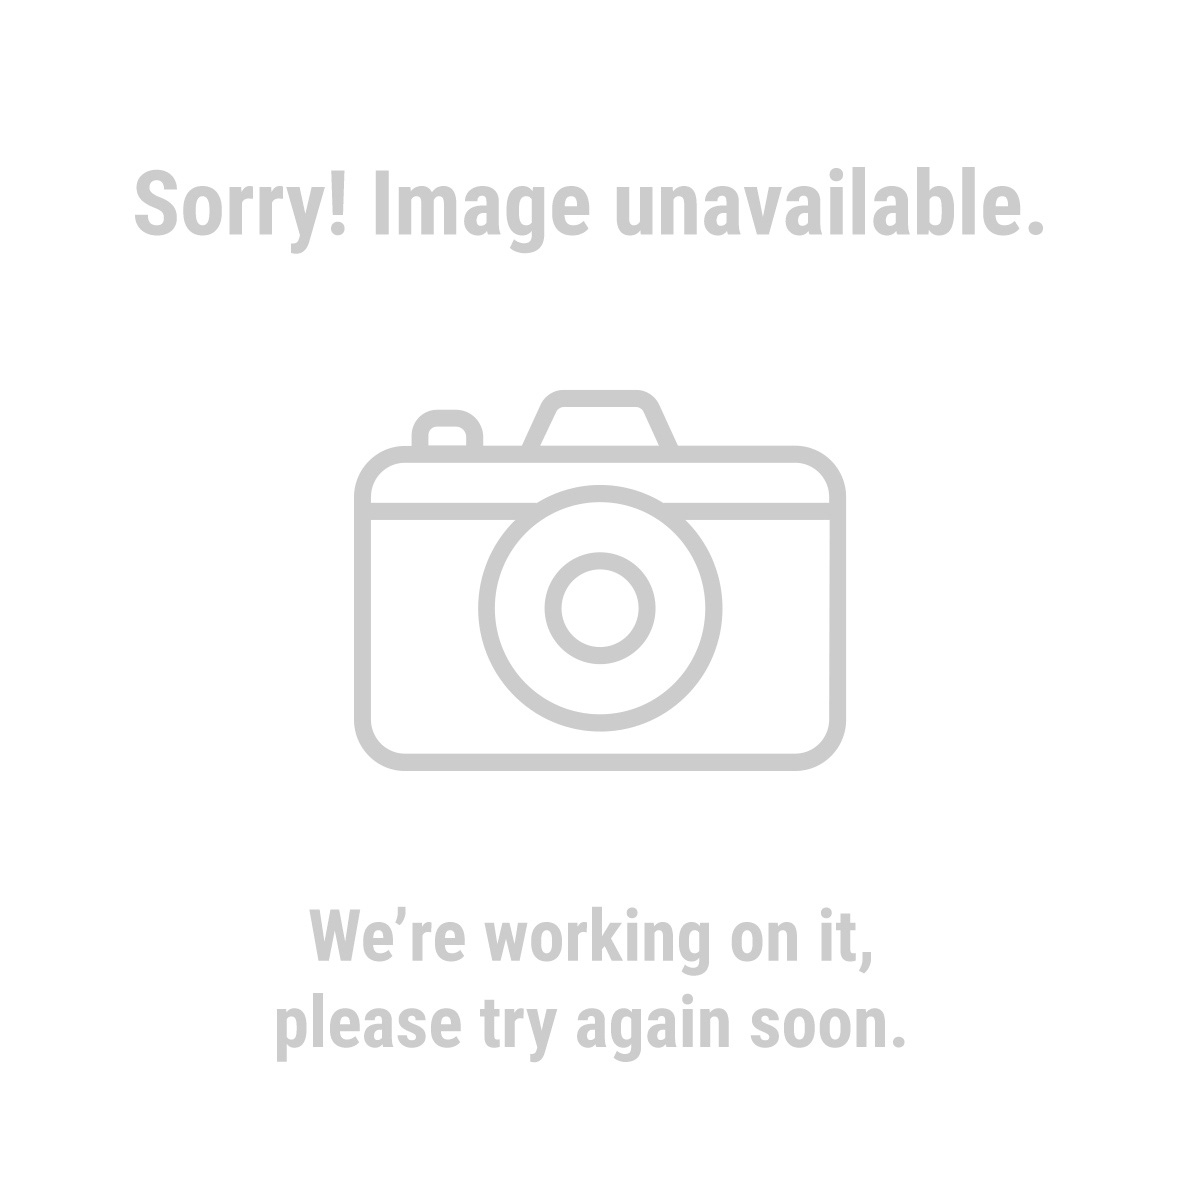 Haul-Master® 96462 Trailer Sway Control Kit